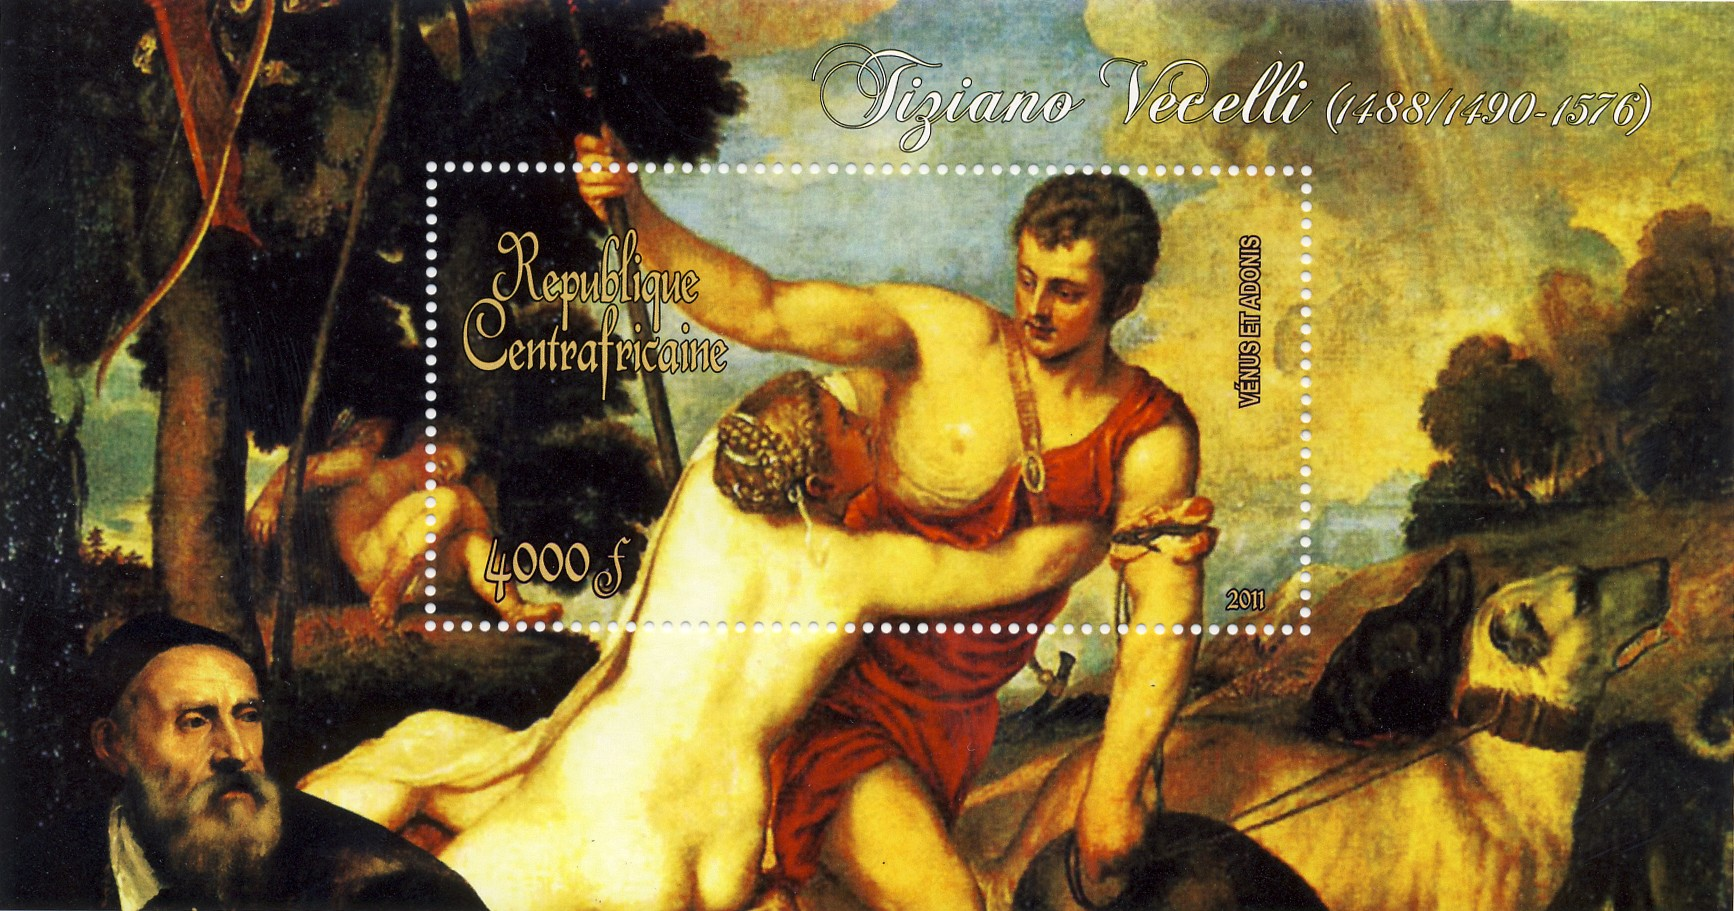 Paintings of Tiziano Vecelli, (1488/1490-1576). (Venus et Adonis) - Issue of Central African republic postage stamps